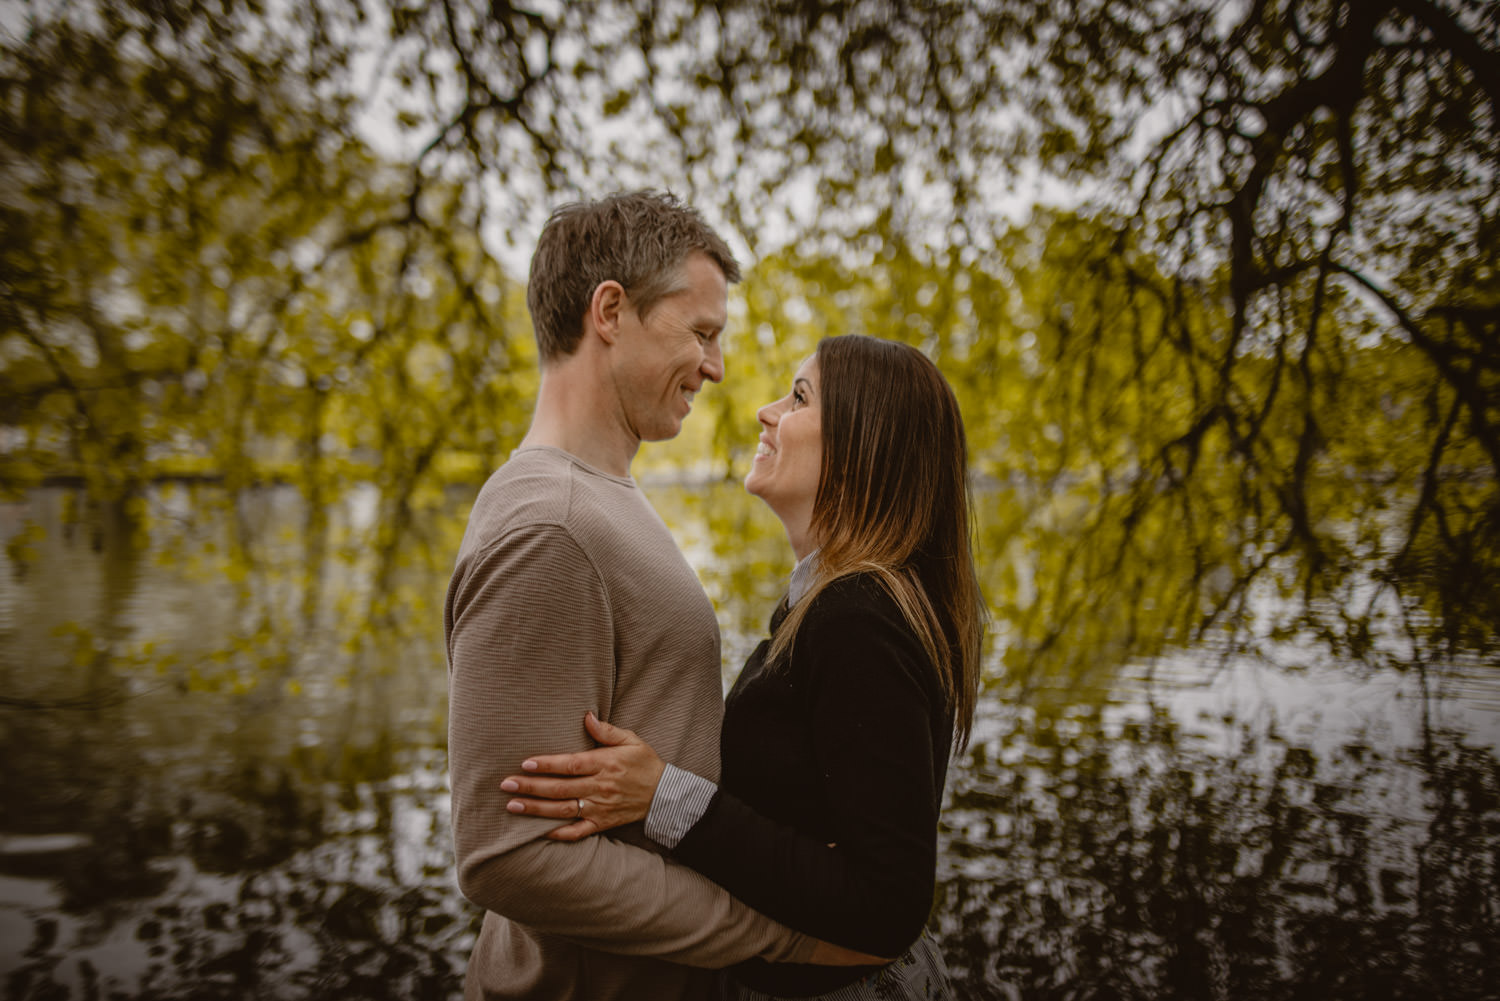 Wedding photographer in Marlow, Buckinghamshire